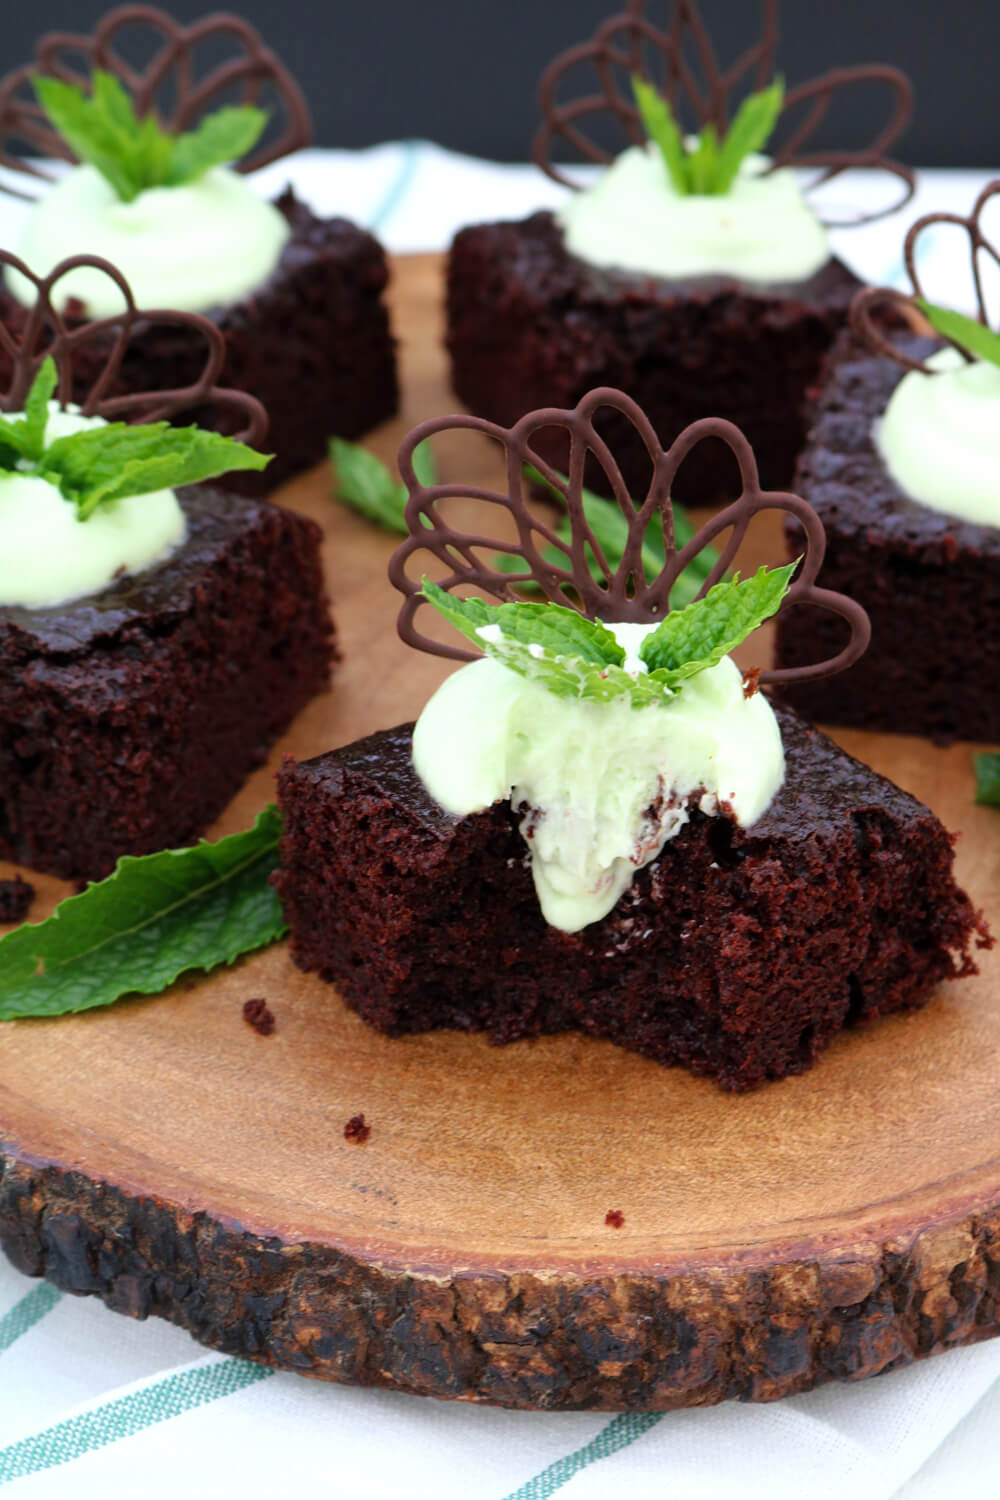 Bake Off Bake Along | Chocolate and Mint Mousse Traybake | Take Some Whisks